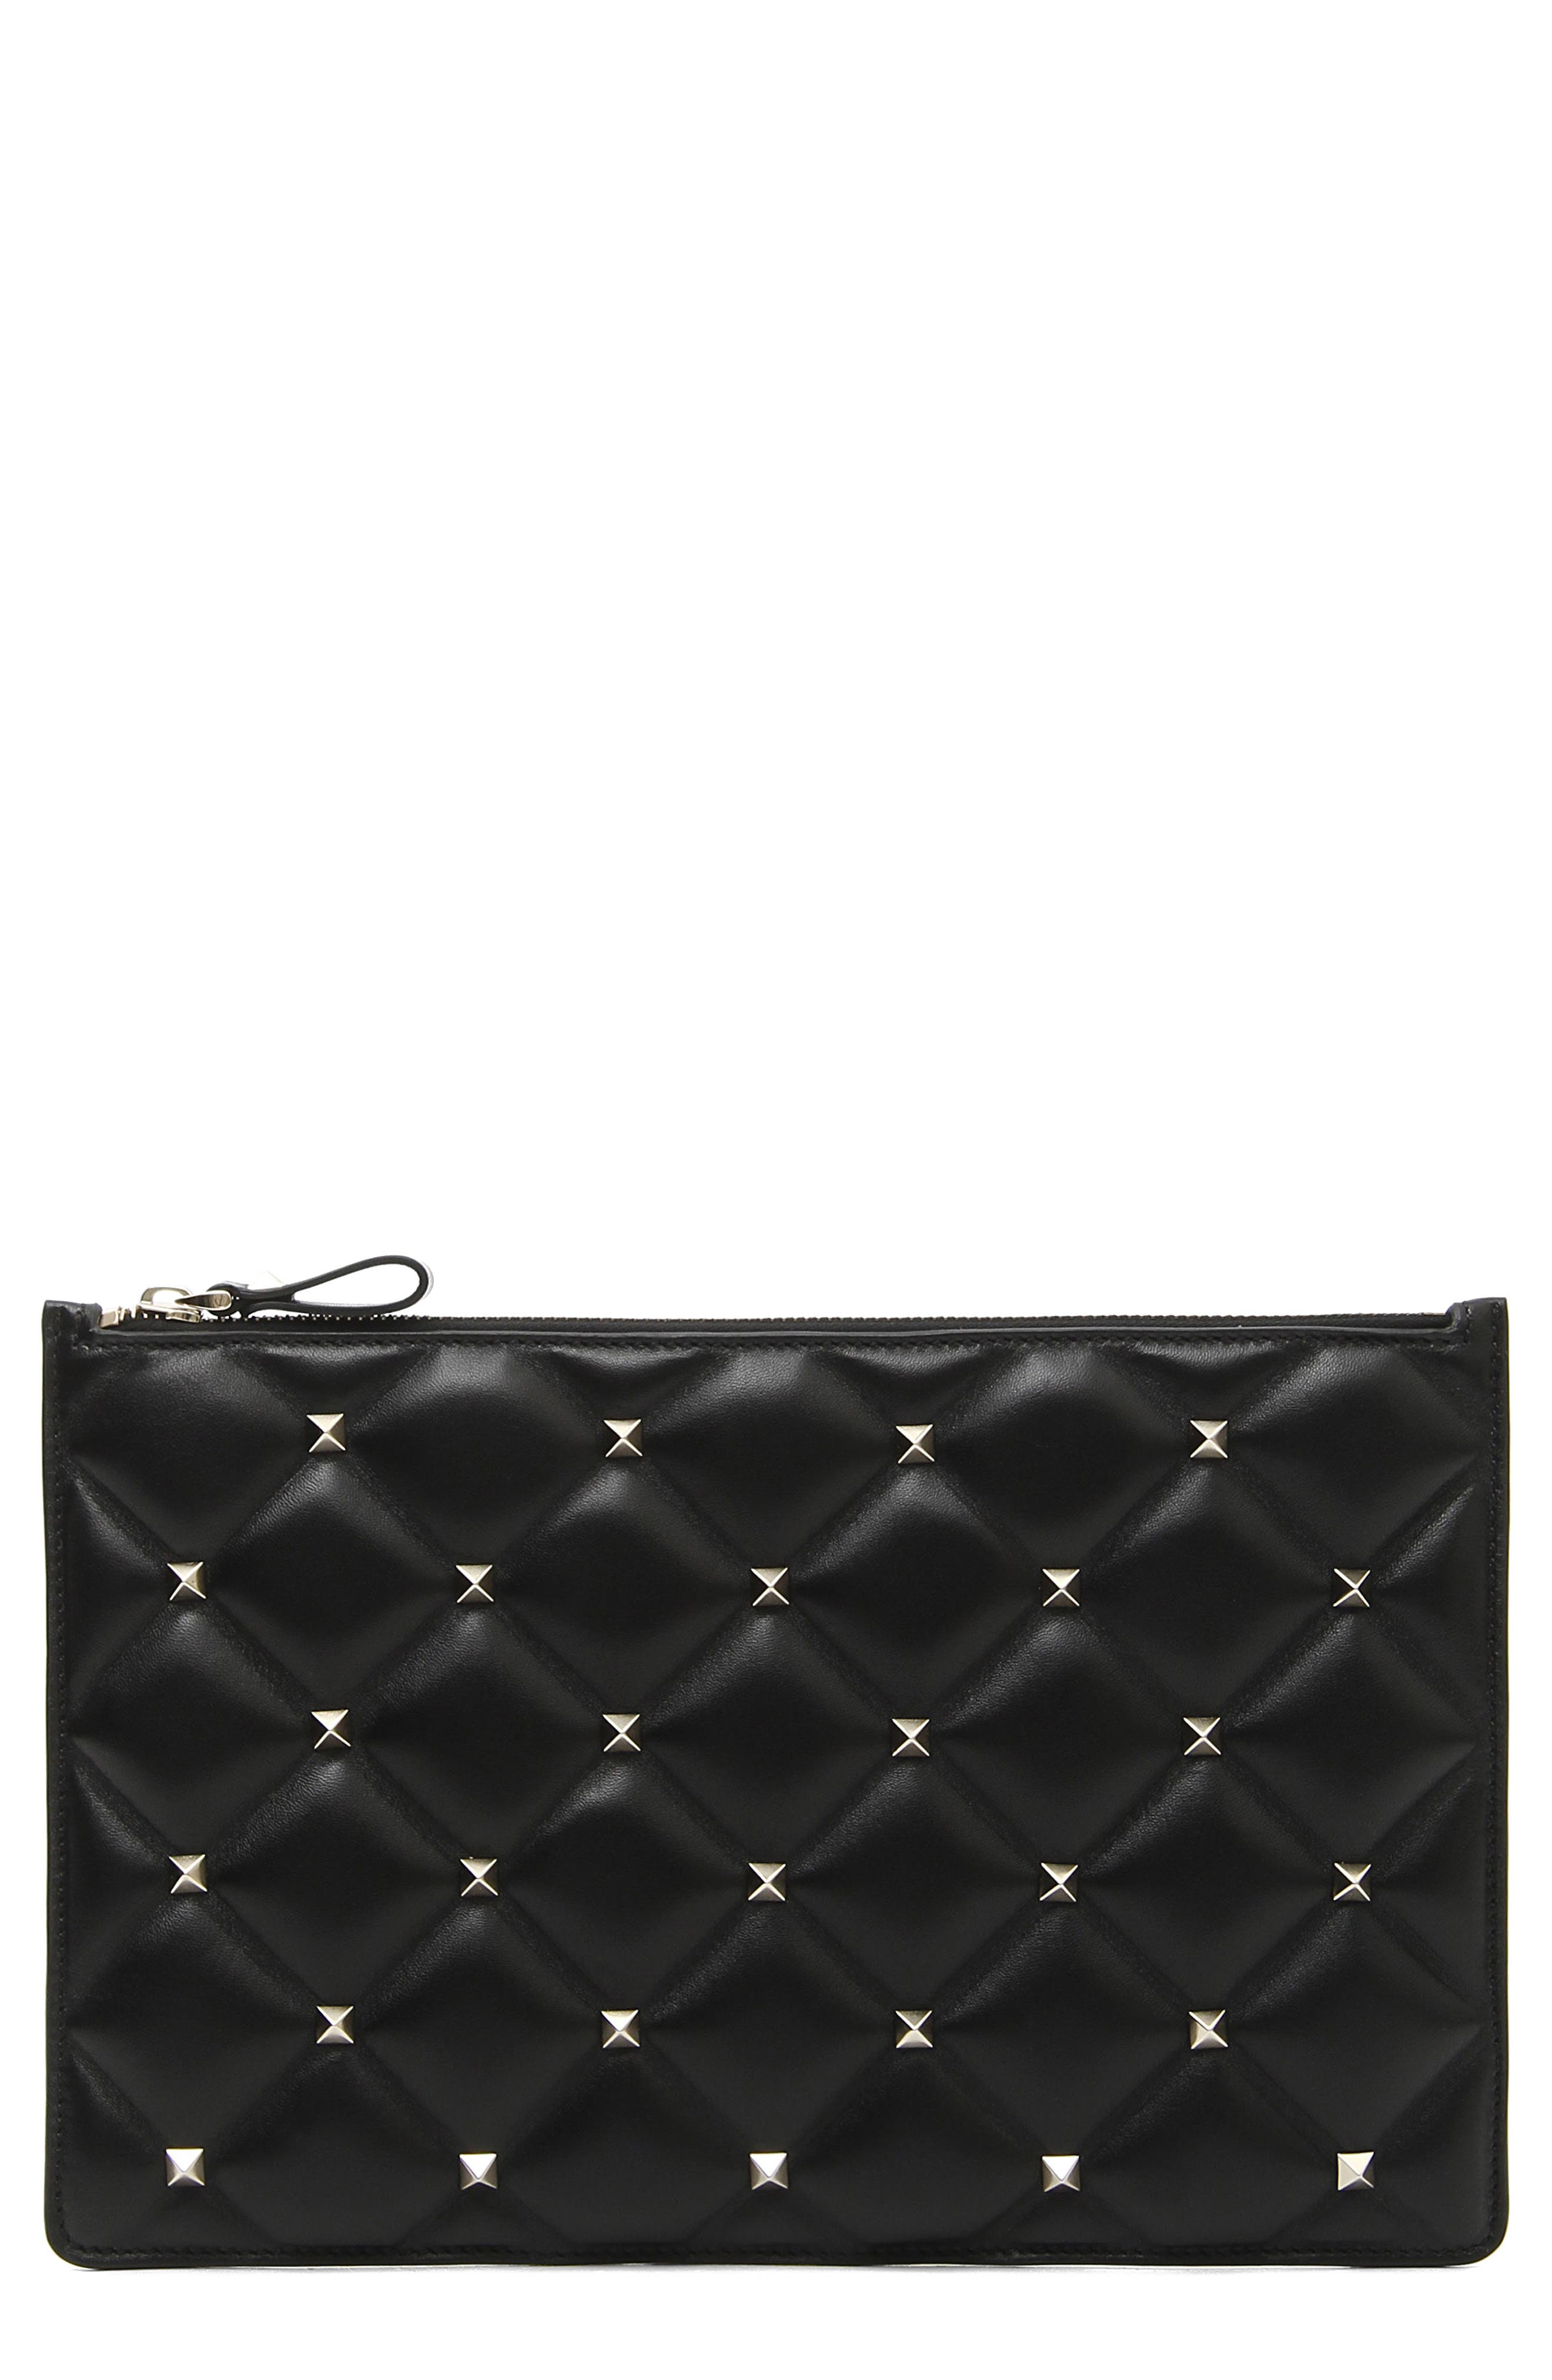 VALENTINO GARAVANI Large Candystud Leather Pouch, Main, color, NERO